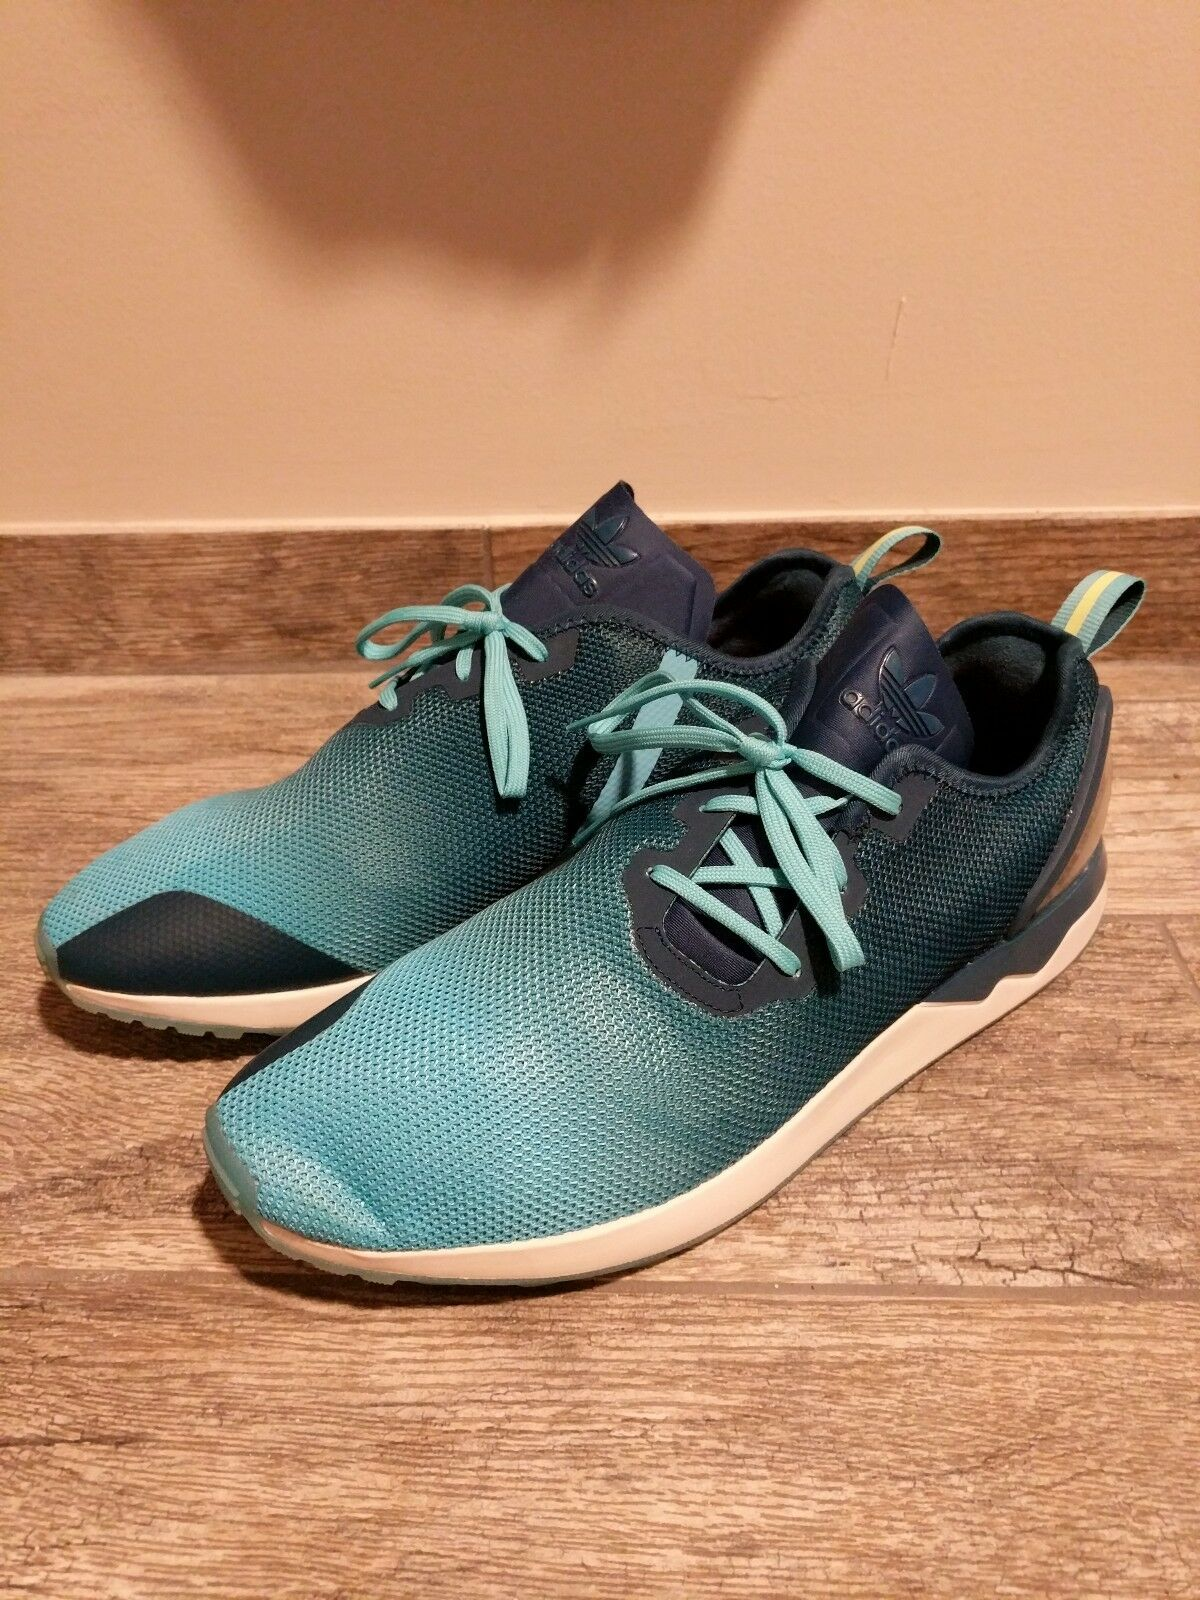 NEW  Adidas ZX Flux ADV Asymmetrical bluee Training shoes - S79056 - Sz 13